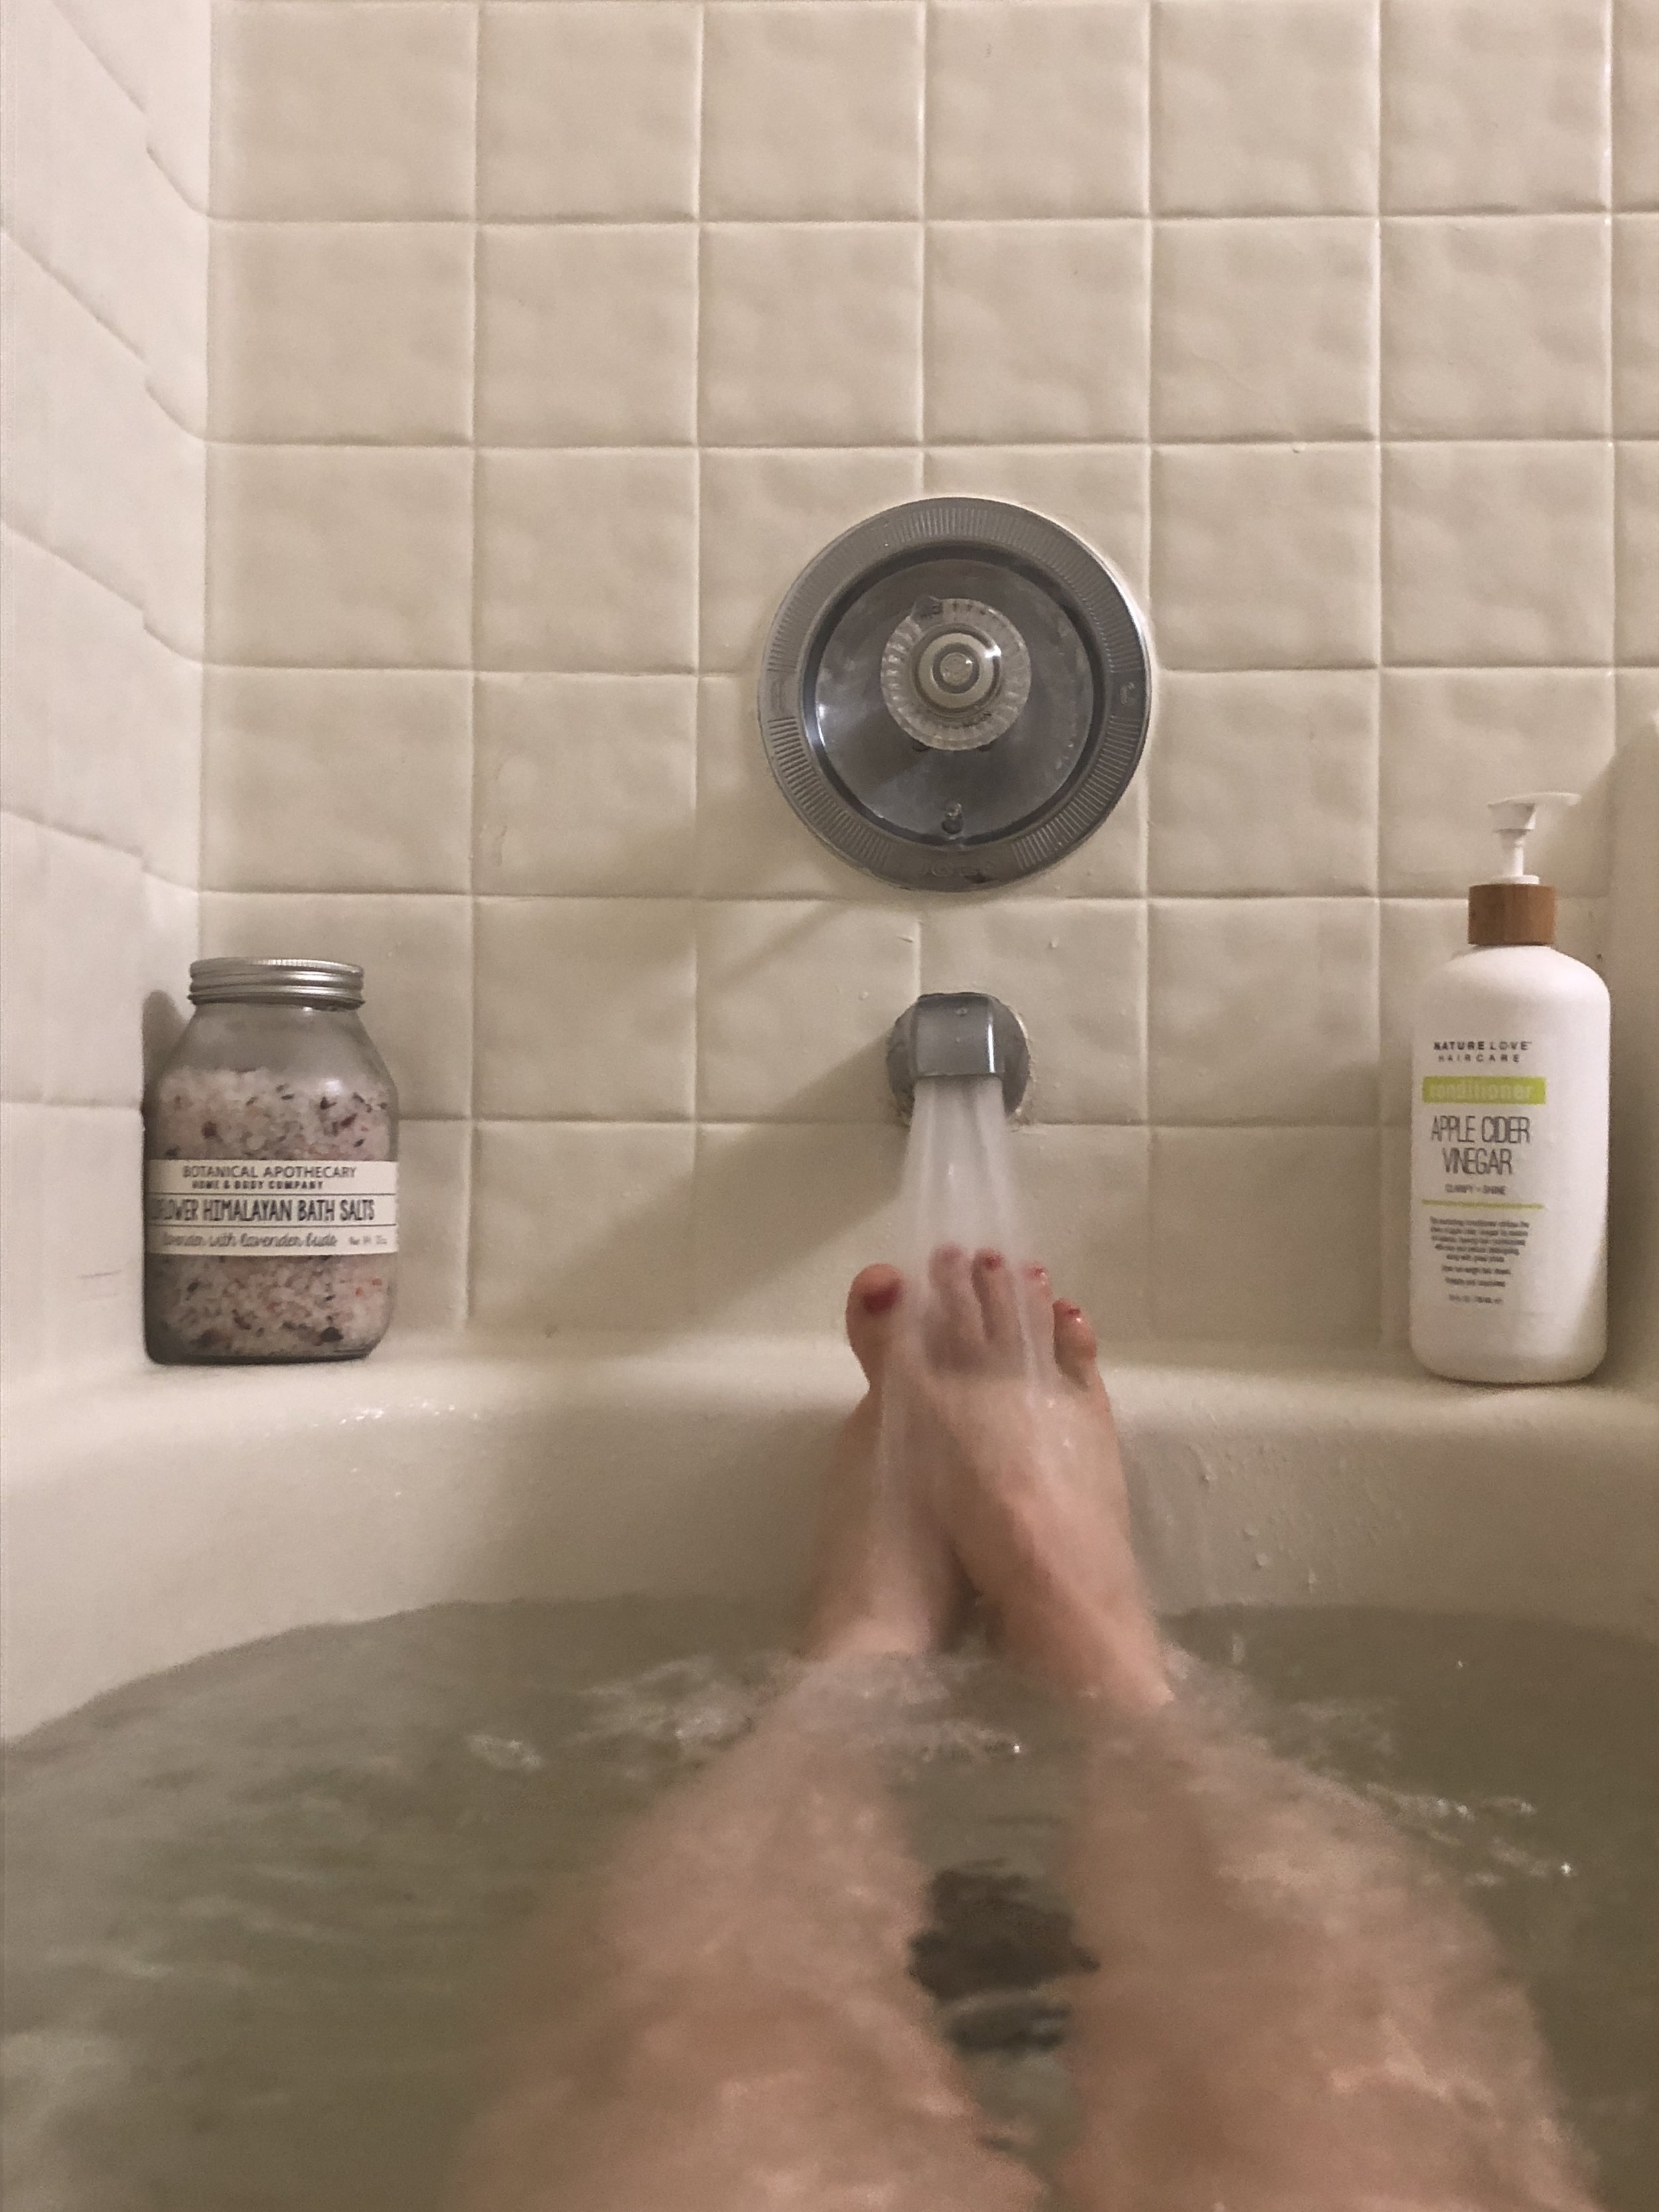 Luxury on the cheap: Bath salts and hair conditioner are from Marshalls. The pedicure I did myself.